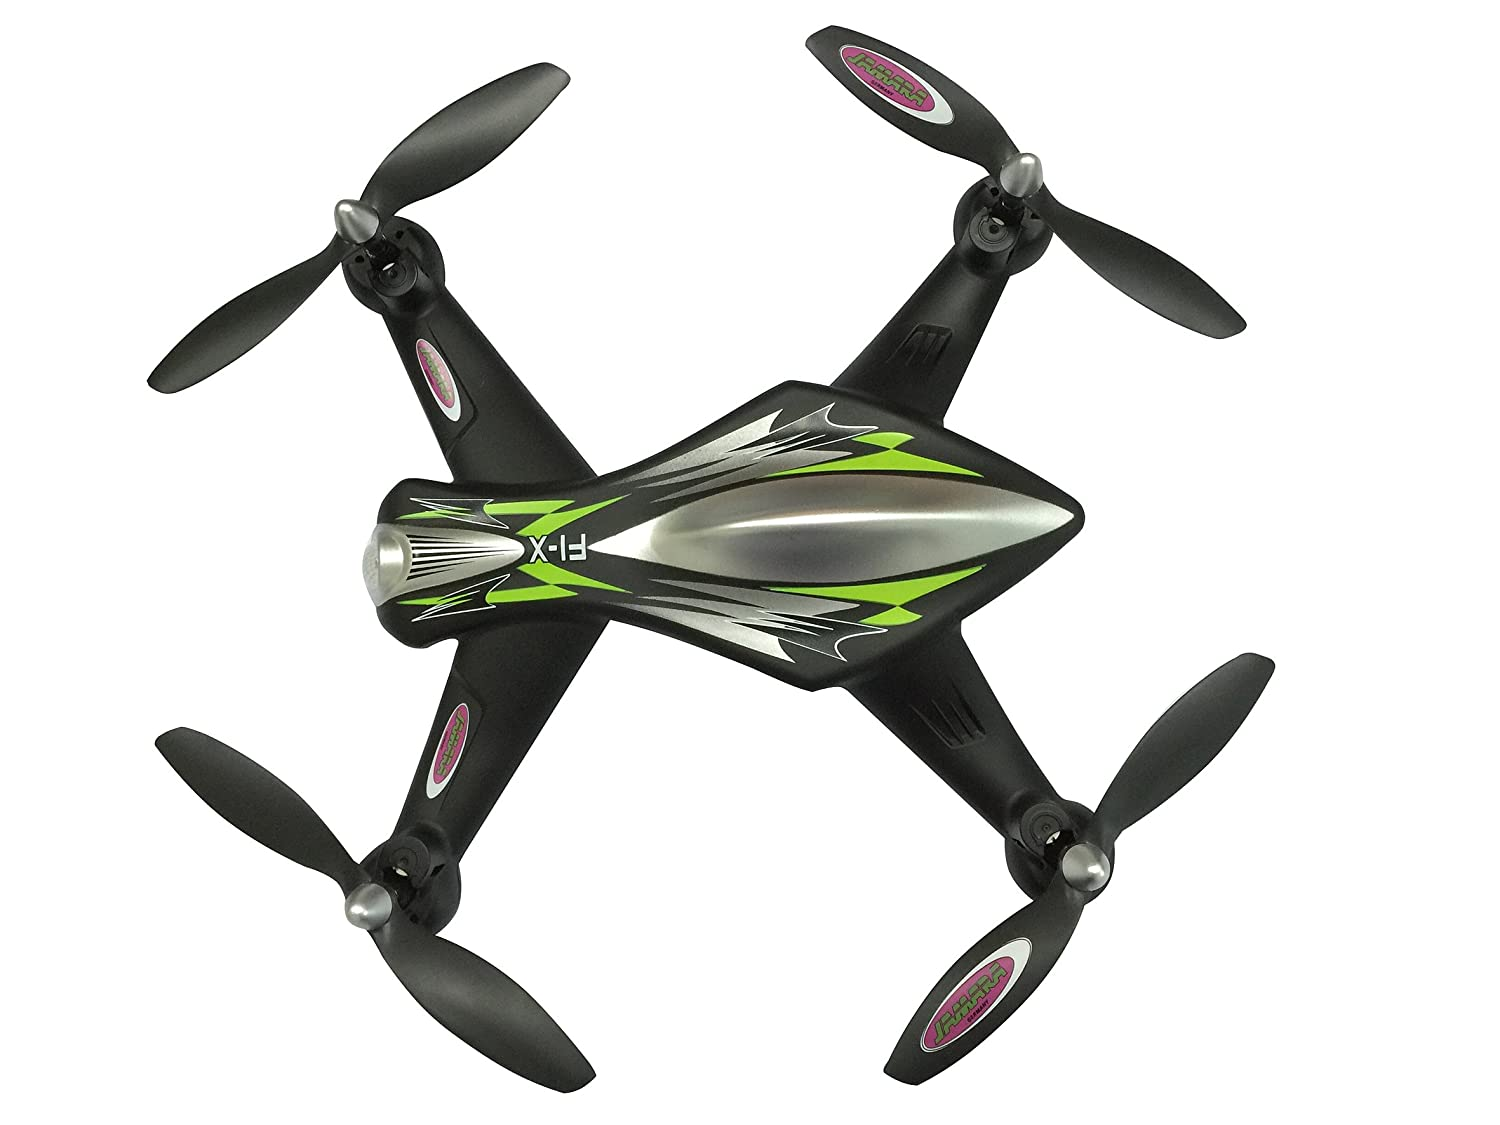 Jamara 422010 - F1X Quadrocopter Altitud HD AHP Plus, Negro